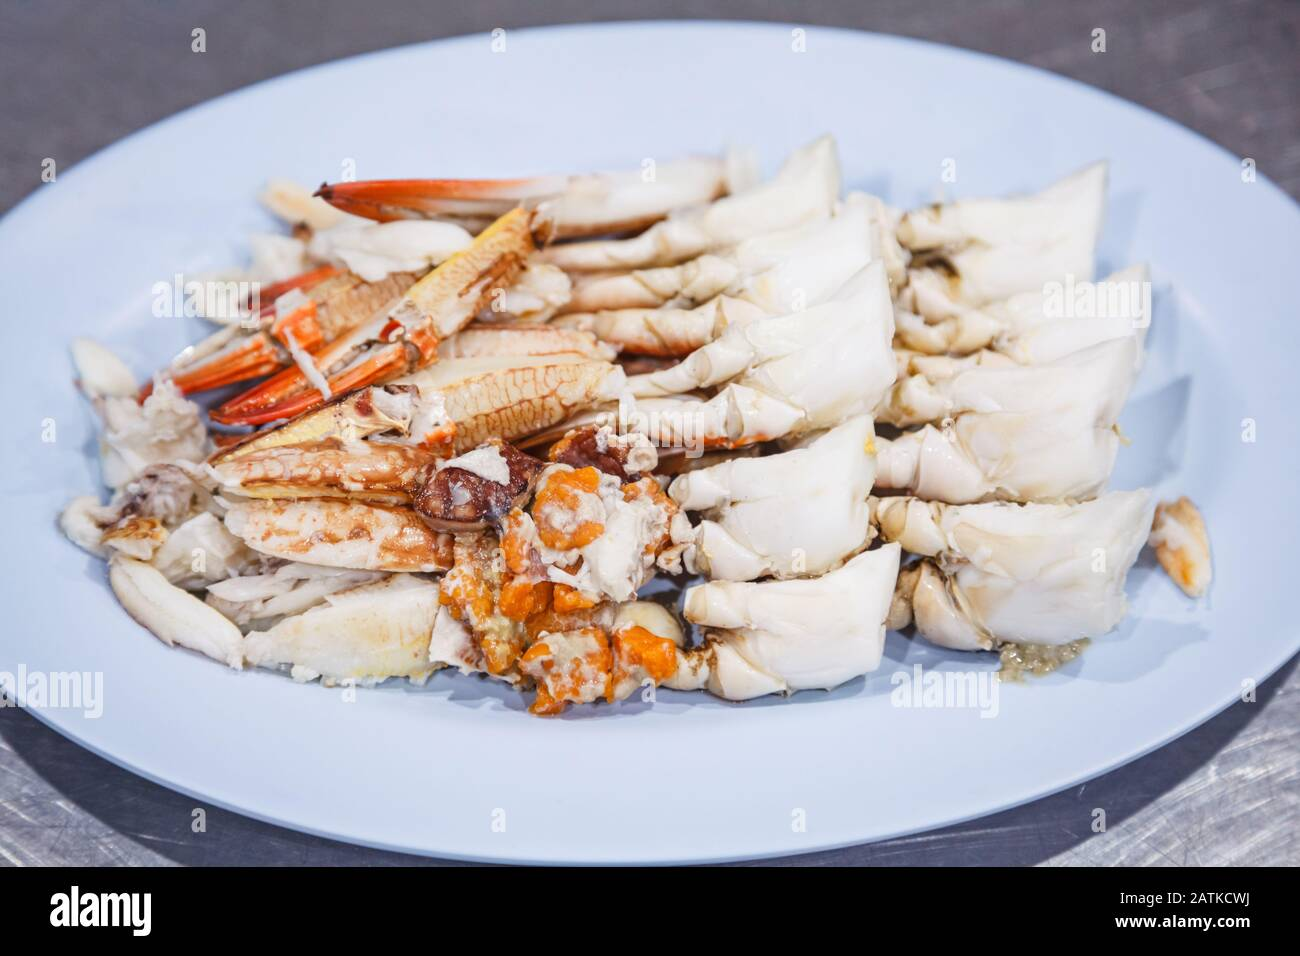 Steamed Blue Crab Scabbard Or Paddle Leg Meat From Sea Market Fresh Tasty Appetizing Cooked Thai Asian Seafood Dish Nutrition Allergy Aquatic Food Stock Photo Alamy